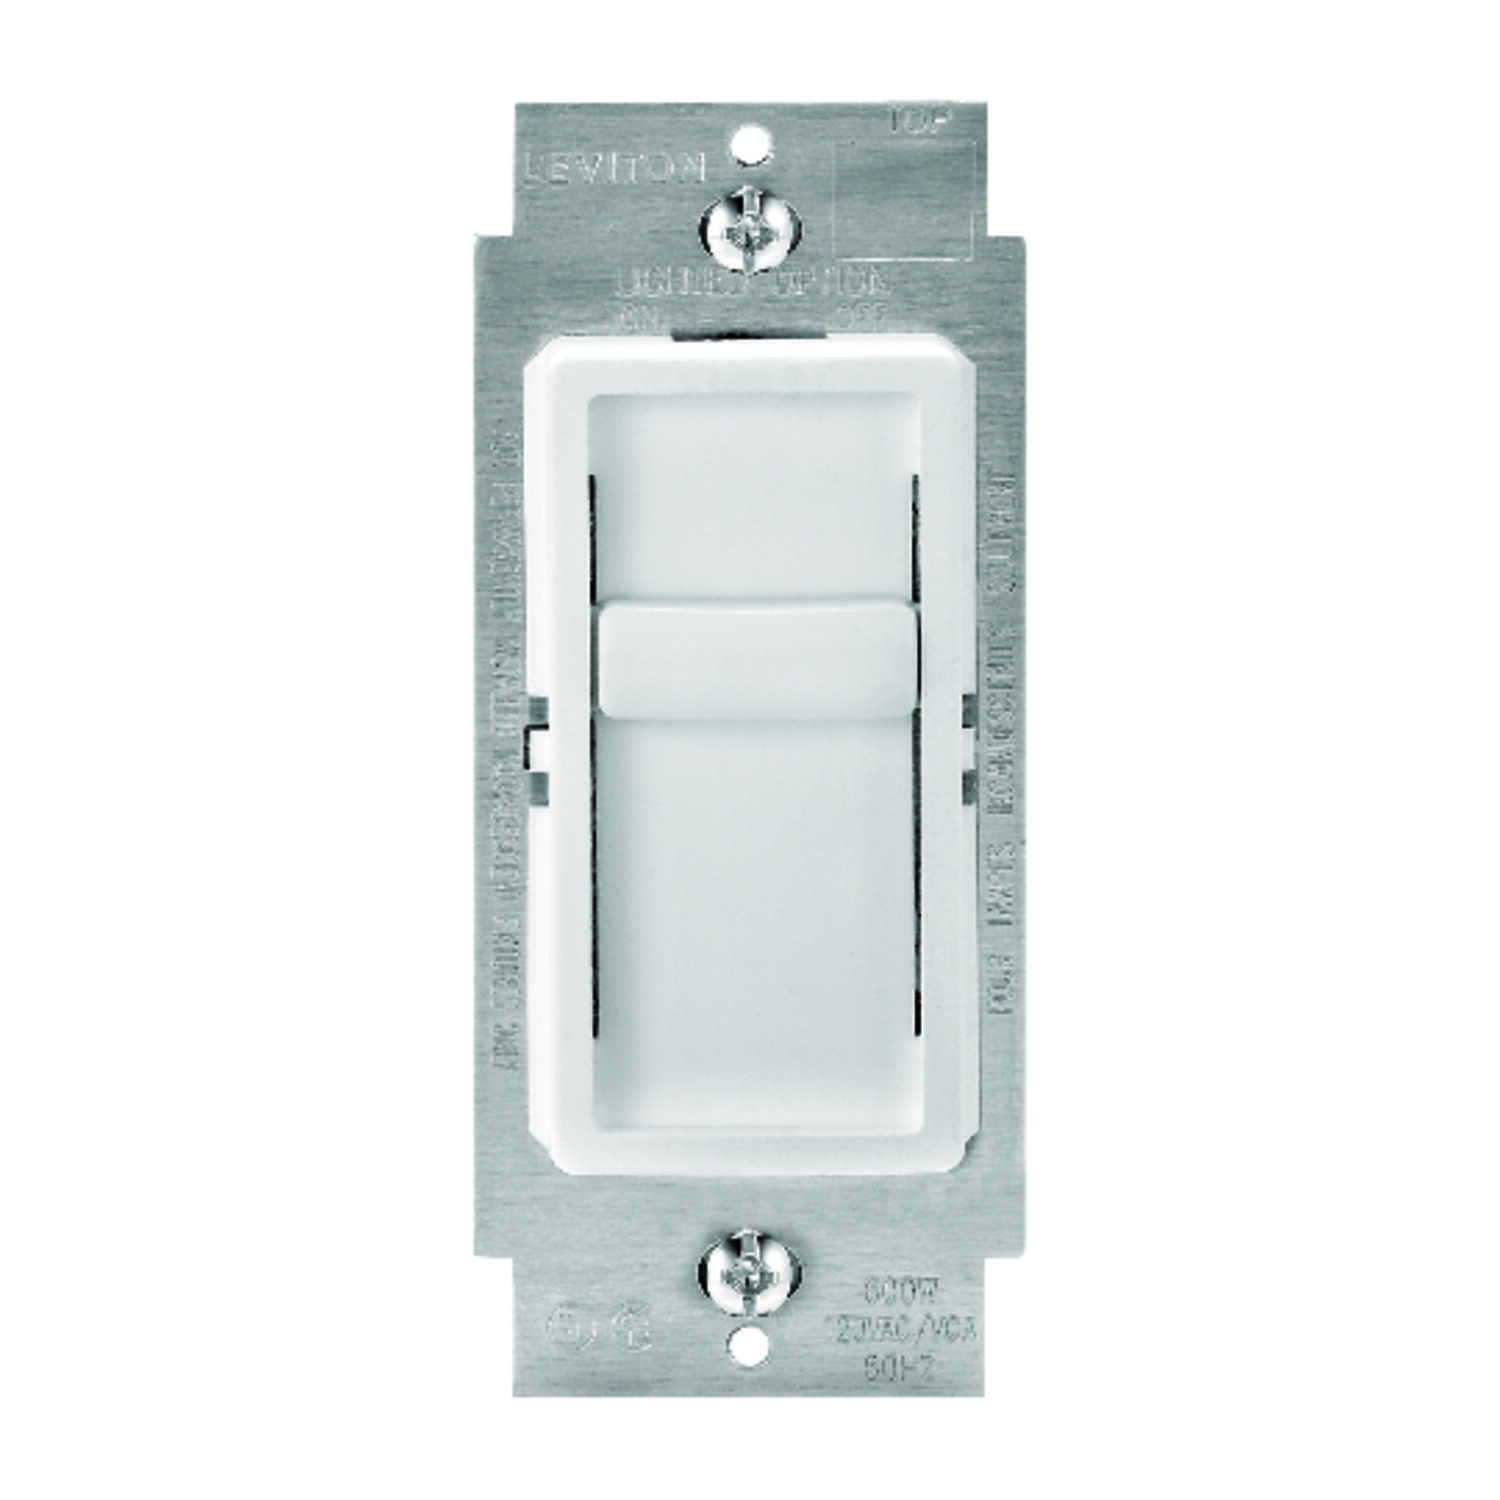 Leviton  SureSlide  White  150 watts Slide  Dimmer Switch  1 pk